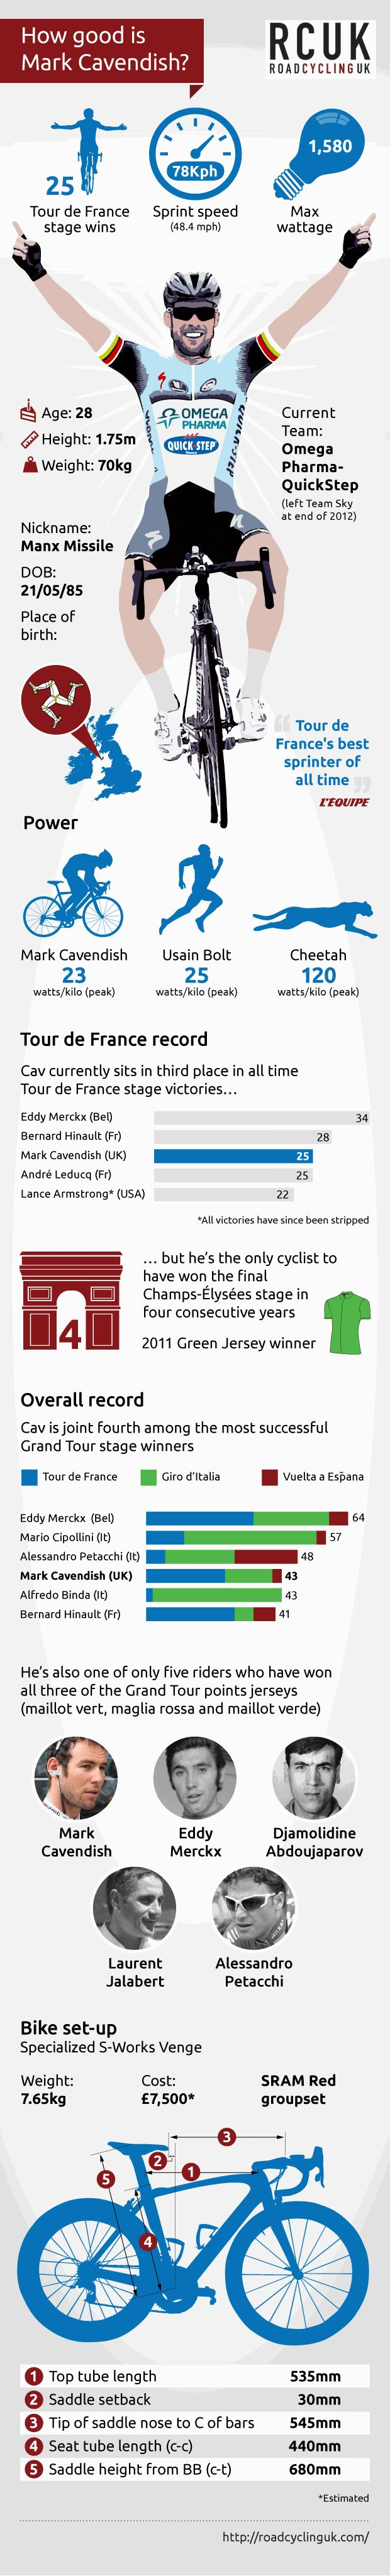 Infographic, Tour de France 2013, Mark Cavendish, ©Factory Media